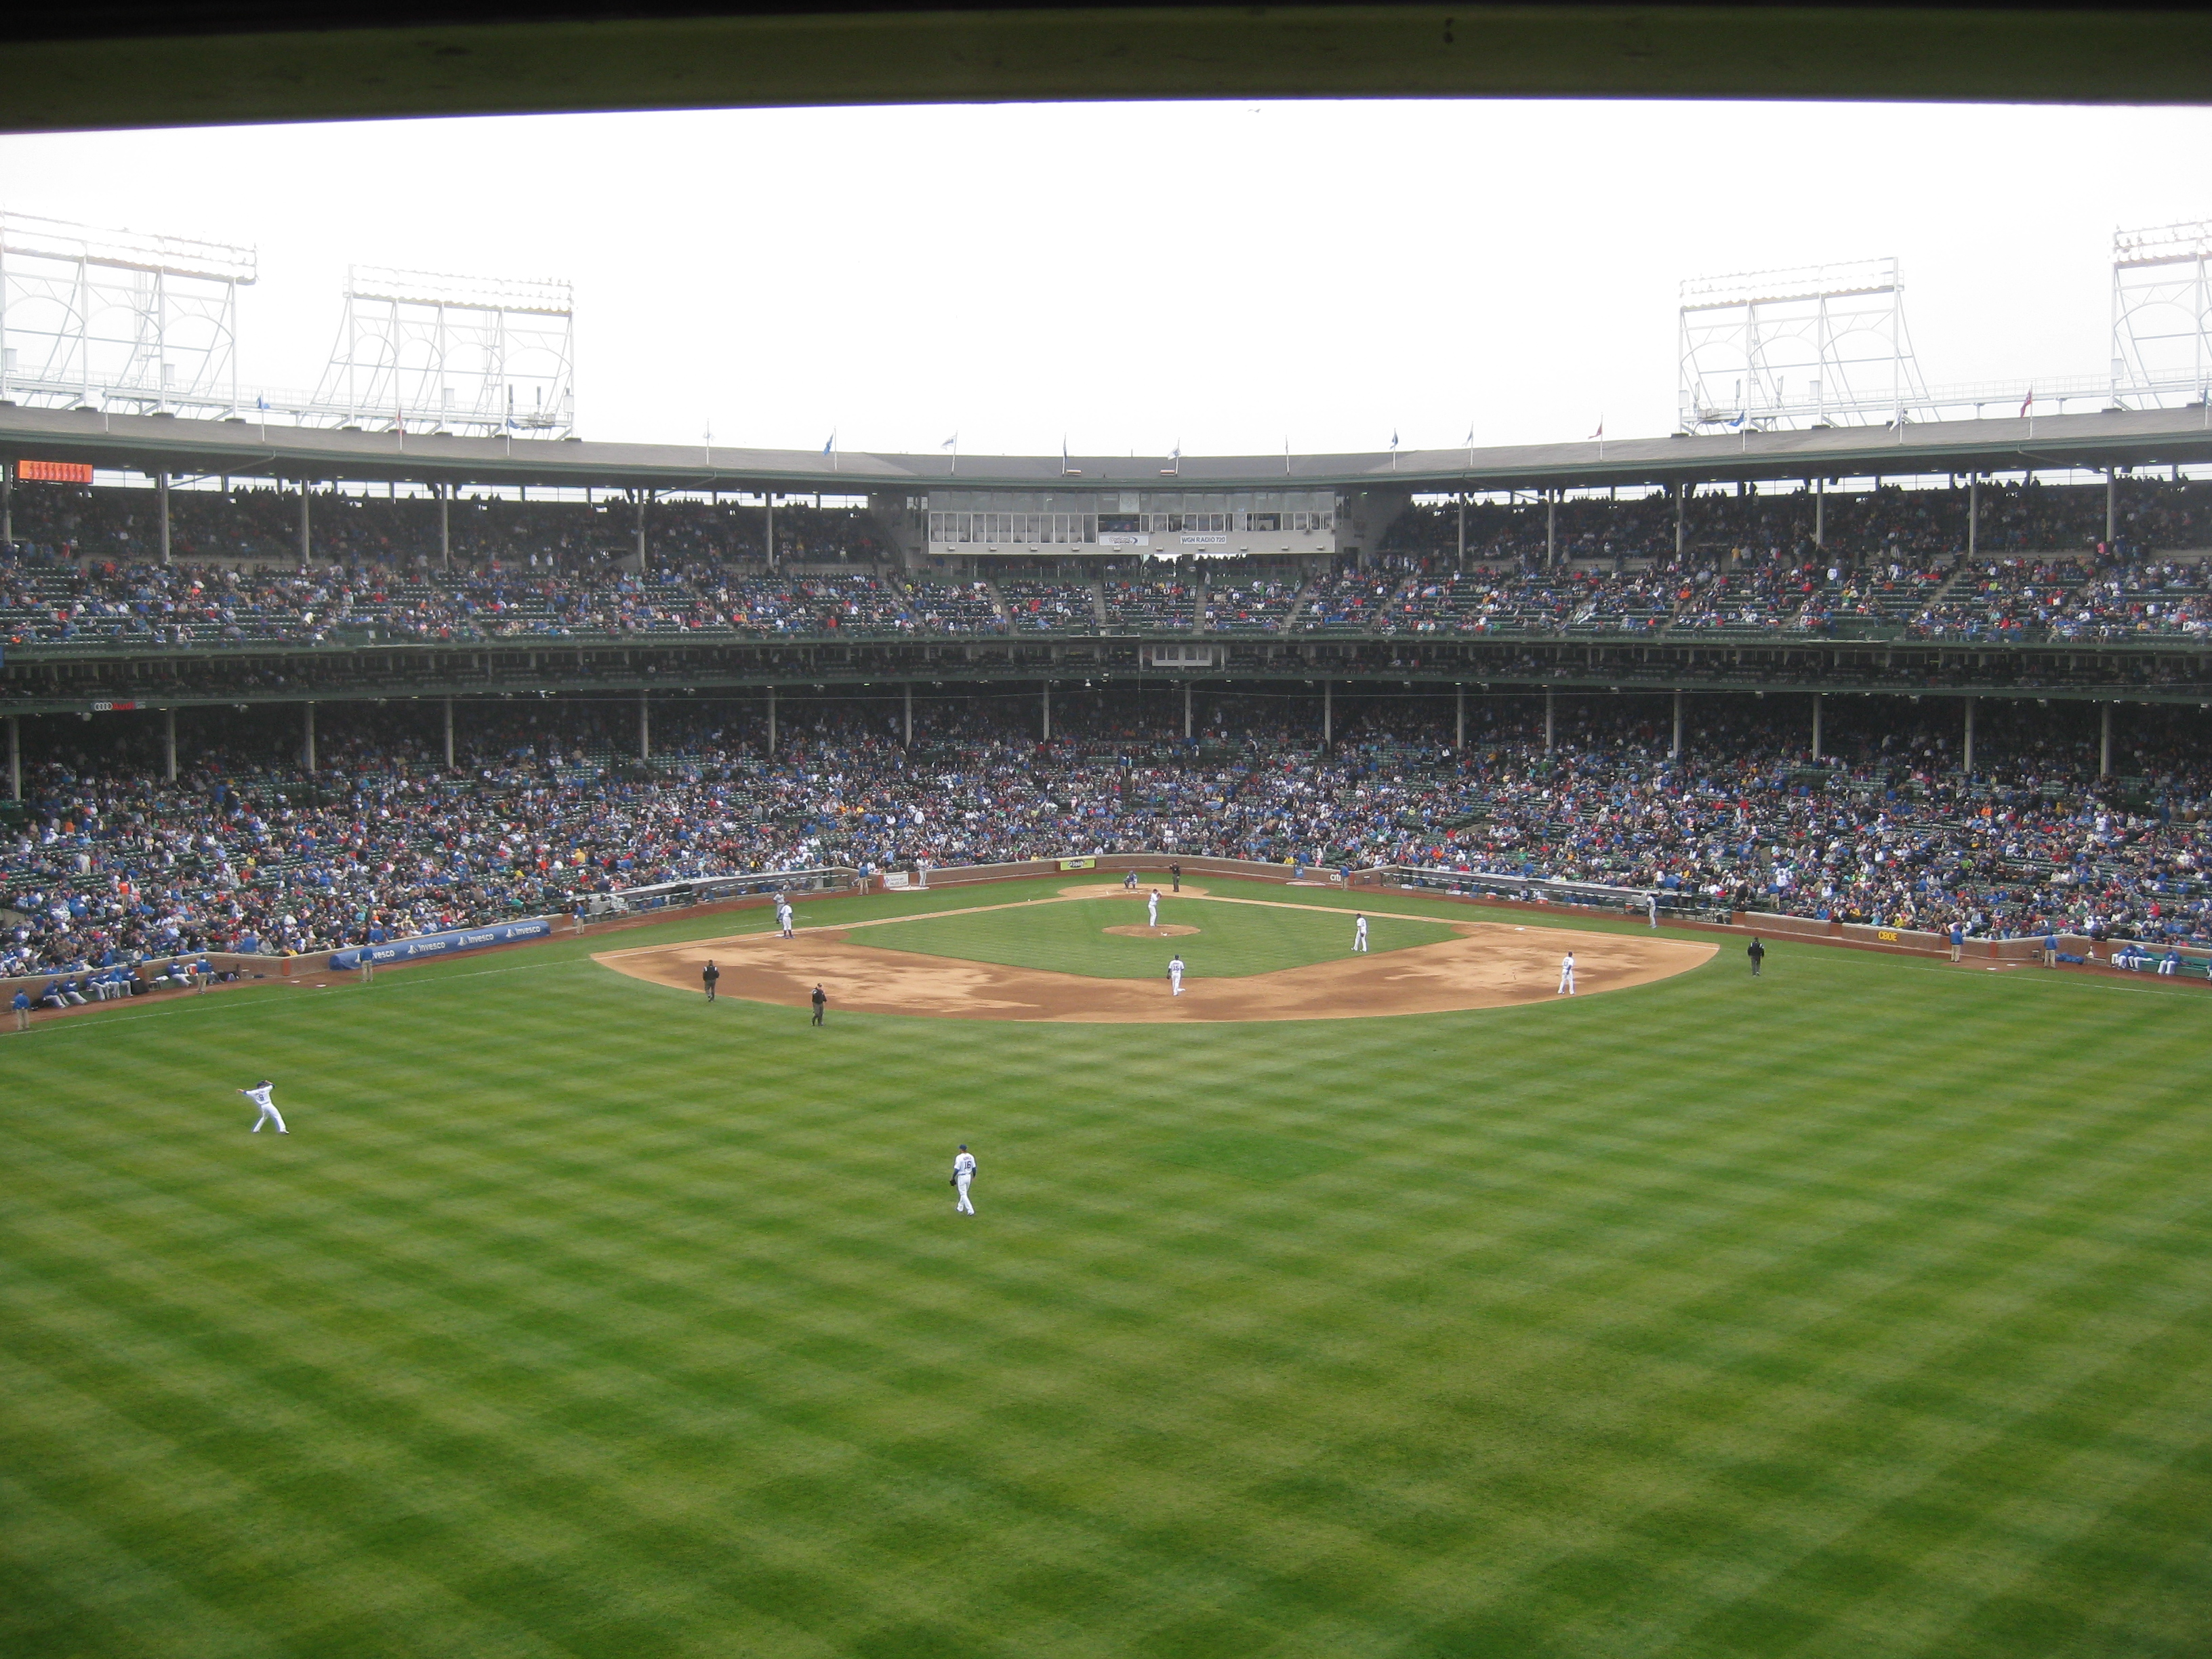 Cubs bleachers